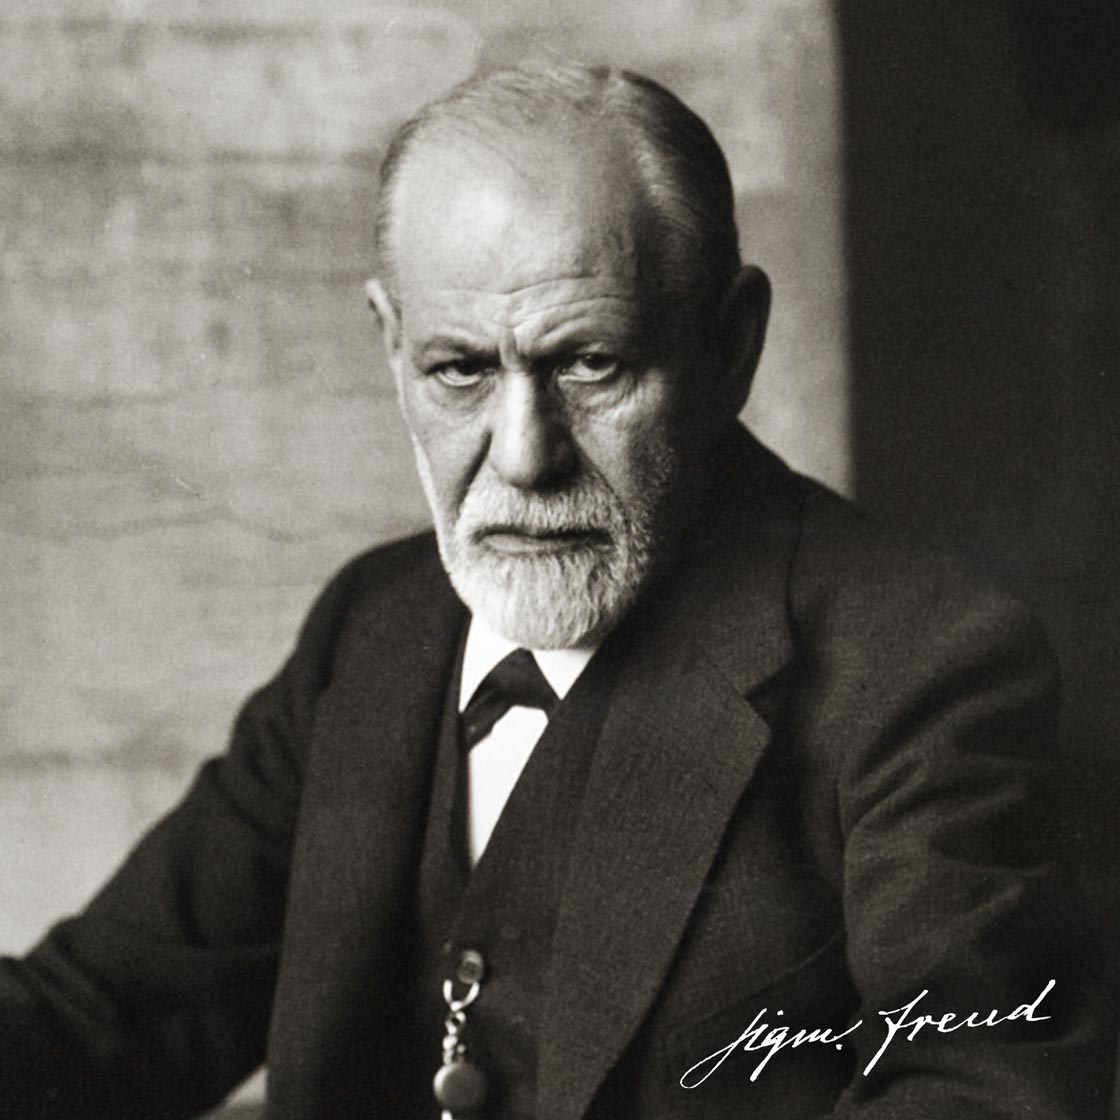 an analysis of sigmund freuds views on illusions Sigmund freud (1856—1939) freud's self-analysis deeply associated with this view of the mind is freud's account of instincts or drives.